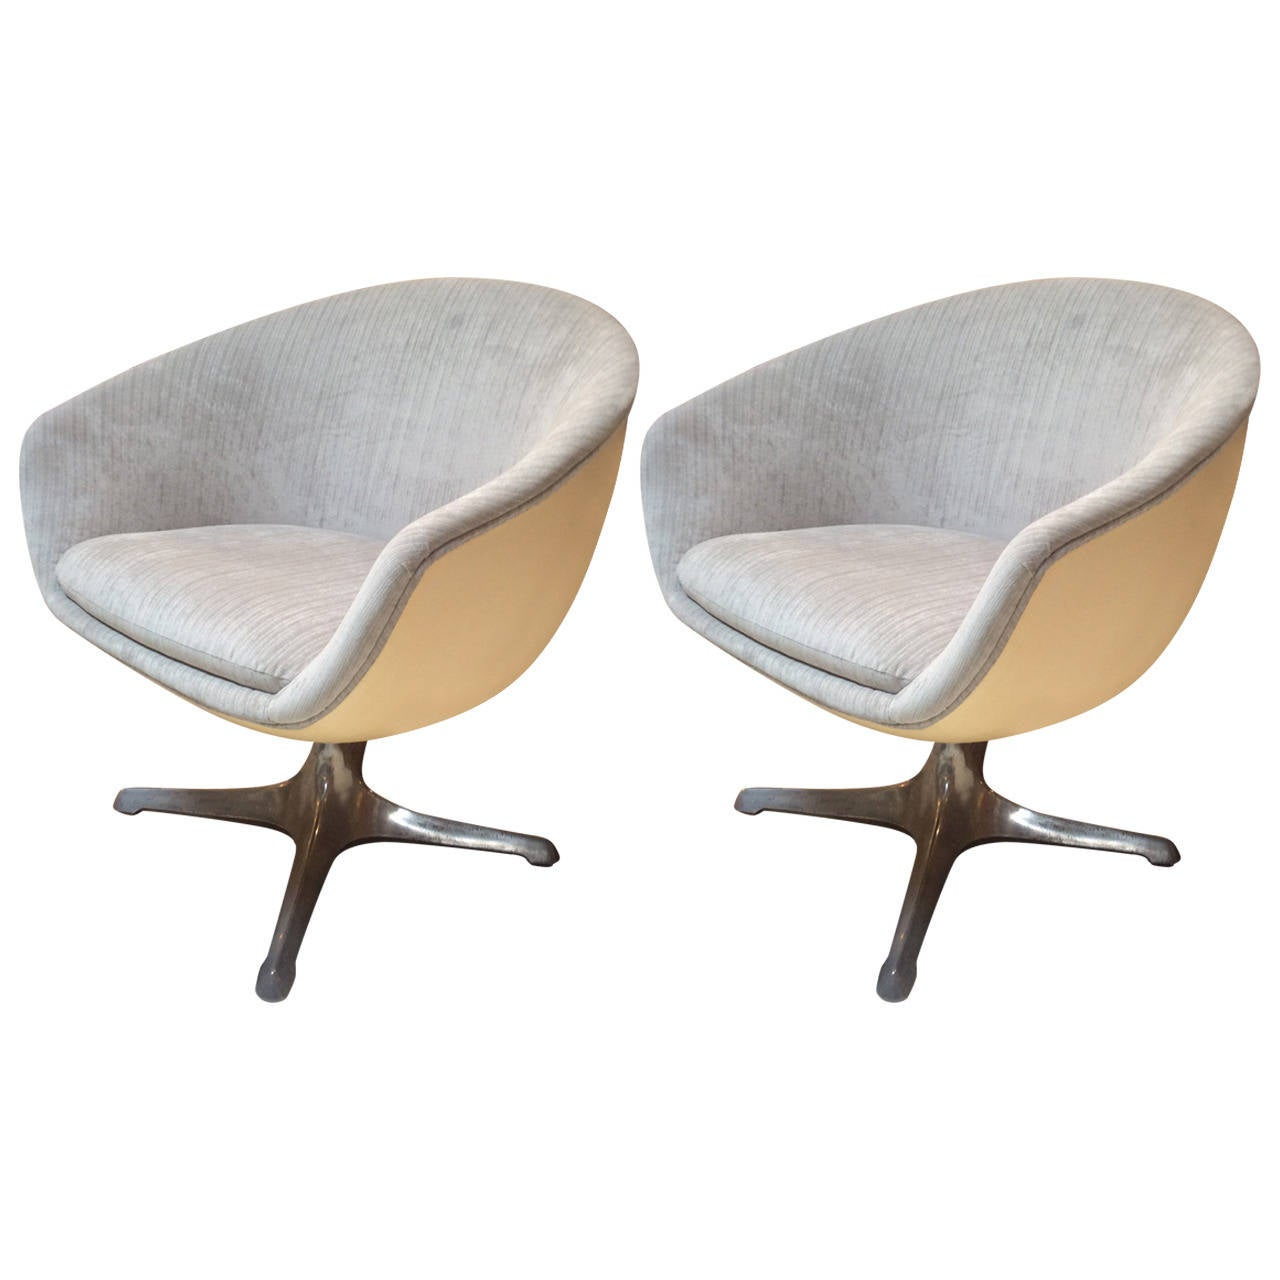 Pair of mid century pod ball or egg swivel chairs from Egg pod ball chair